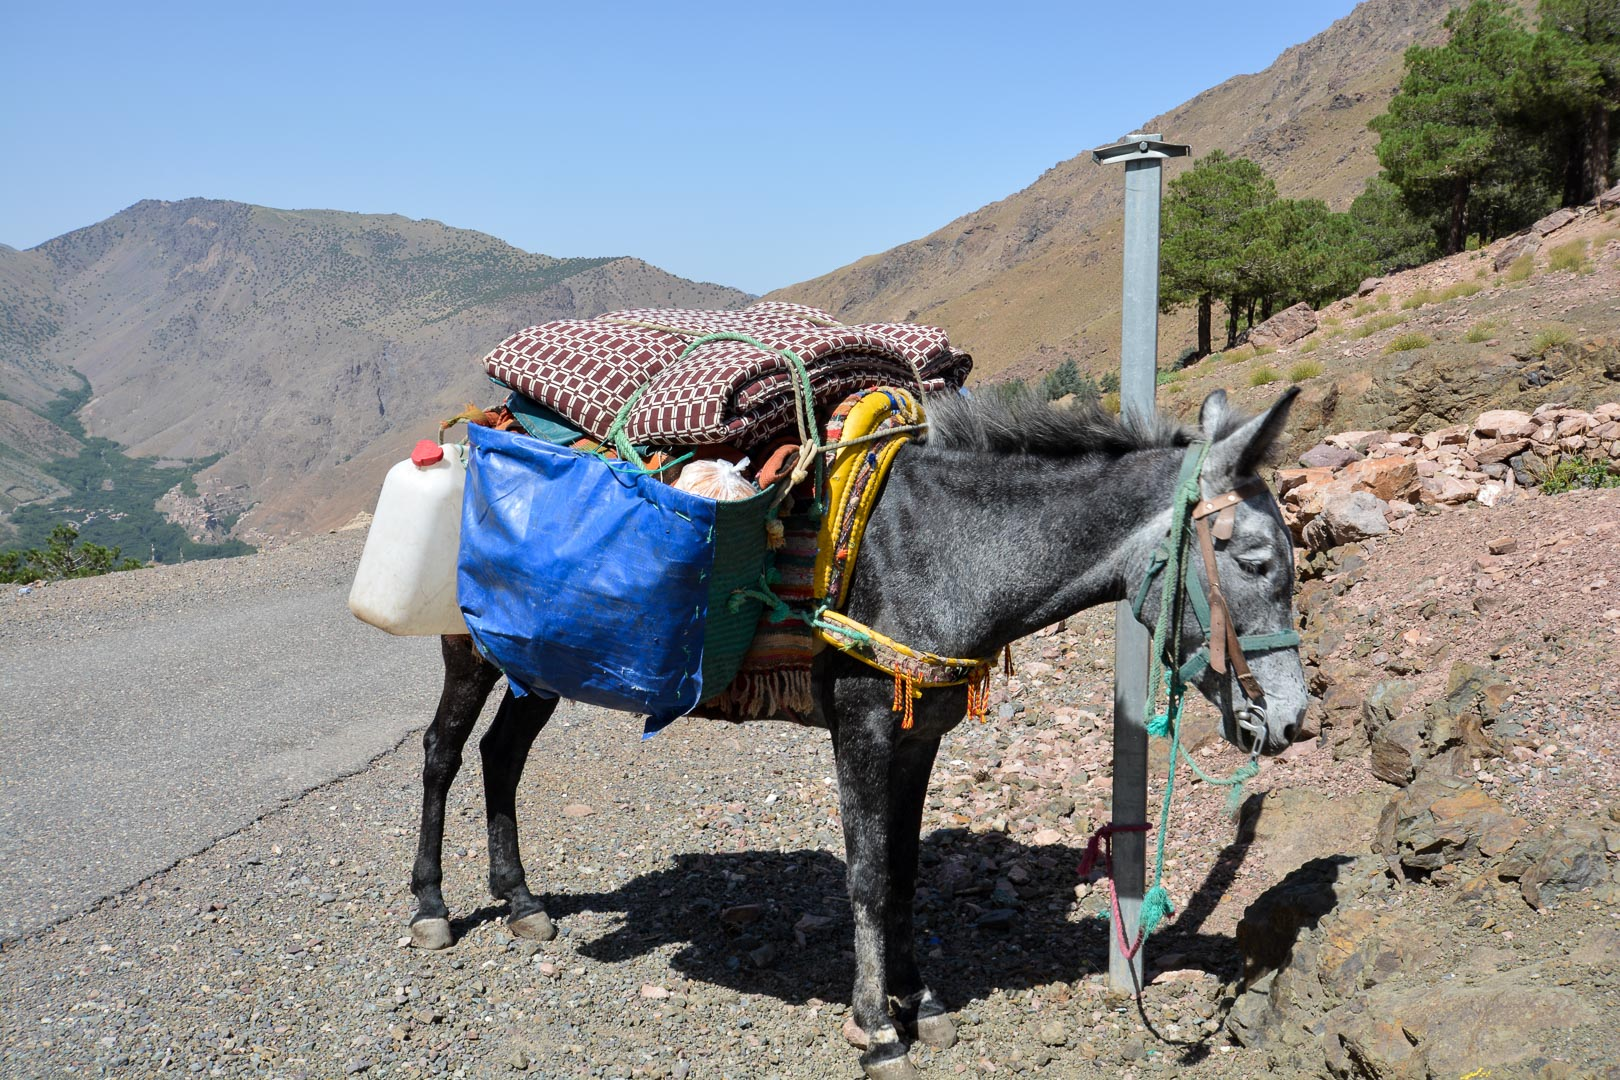 Mule carrying Mohommad's cooking supplies